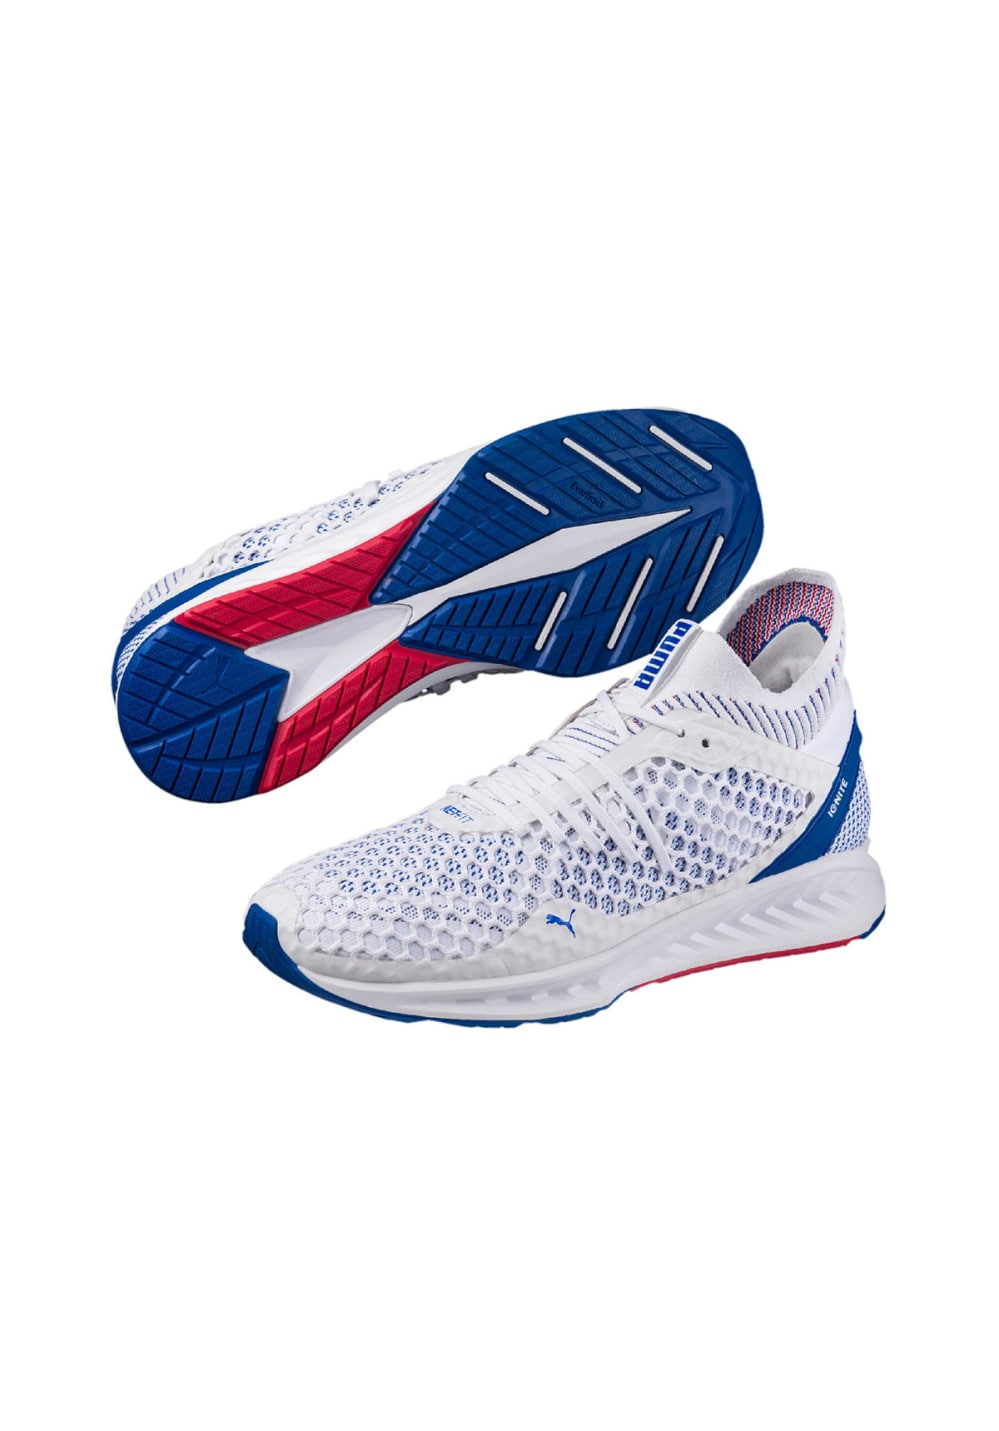 82696932b Puma IGNITE NETFIT - Running shoes for Men - White | 21RUN